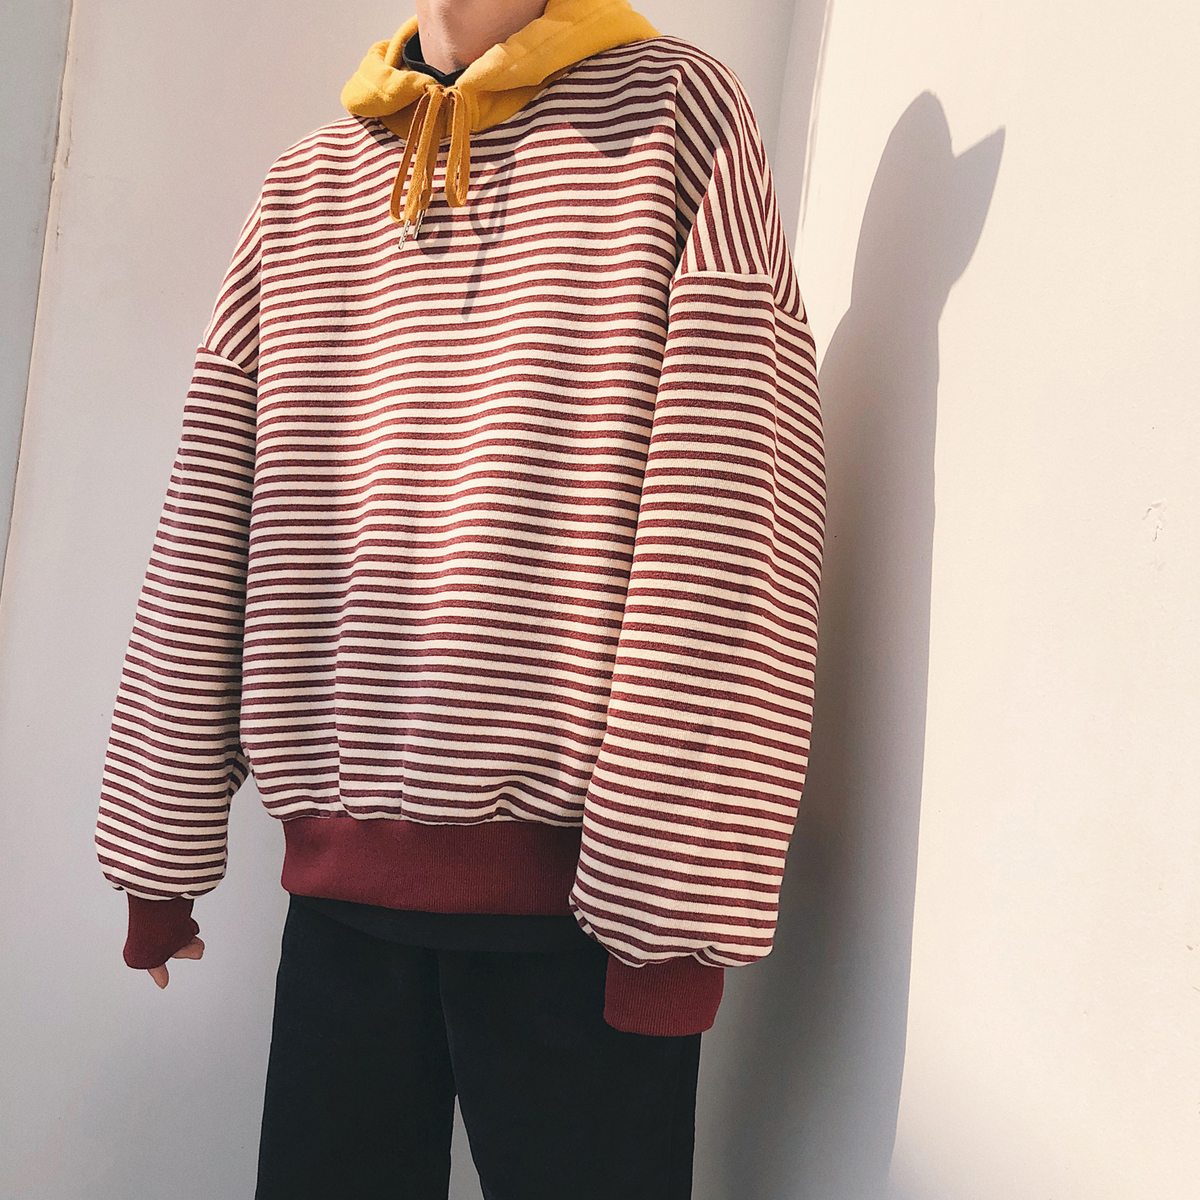 2018 Spring Newest Korean Style Mens Fashion Stripe Hooded Pullover Loose Hoodies Cotton Casual Hip Hop Coat Sweatshirts S-XL